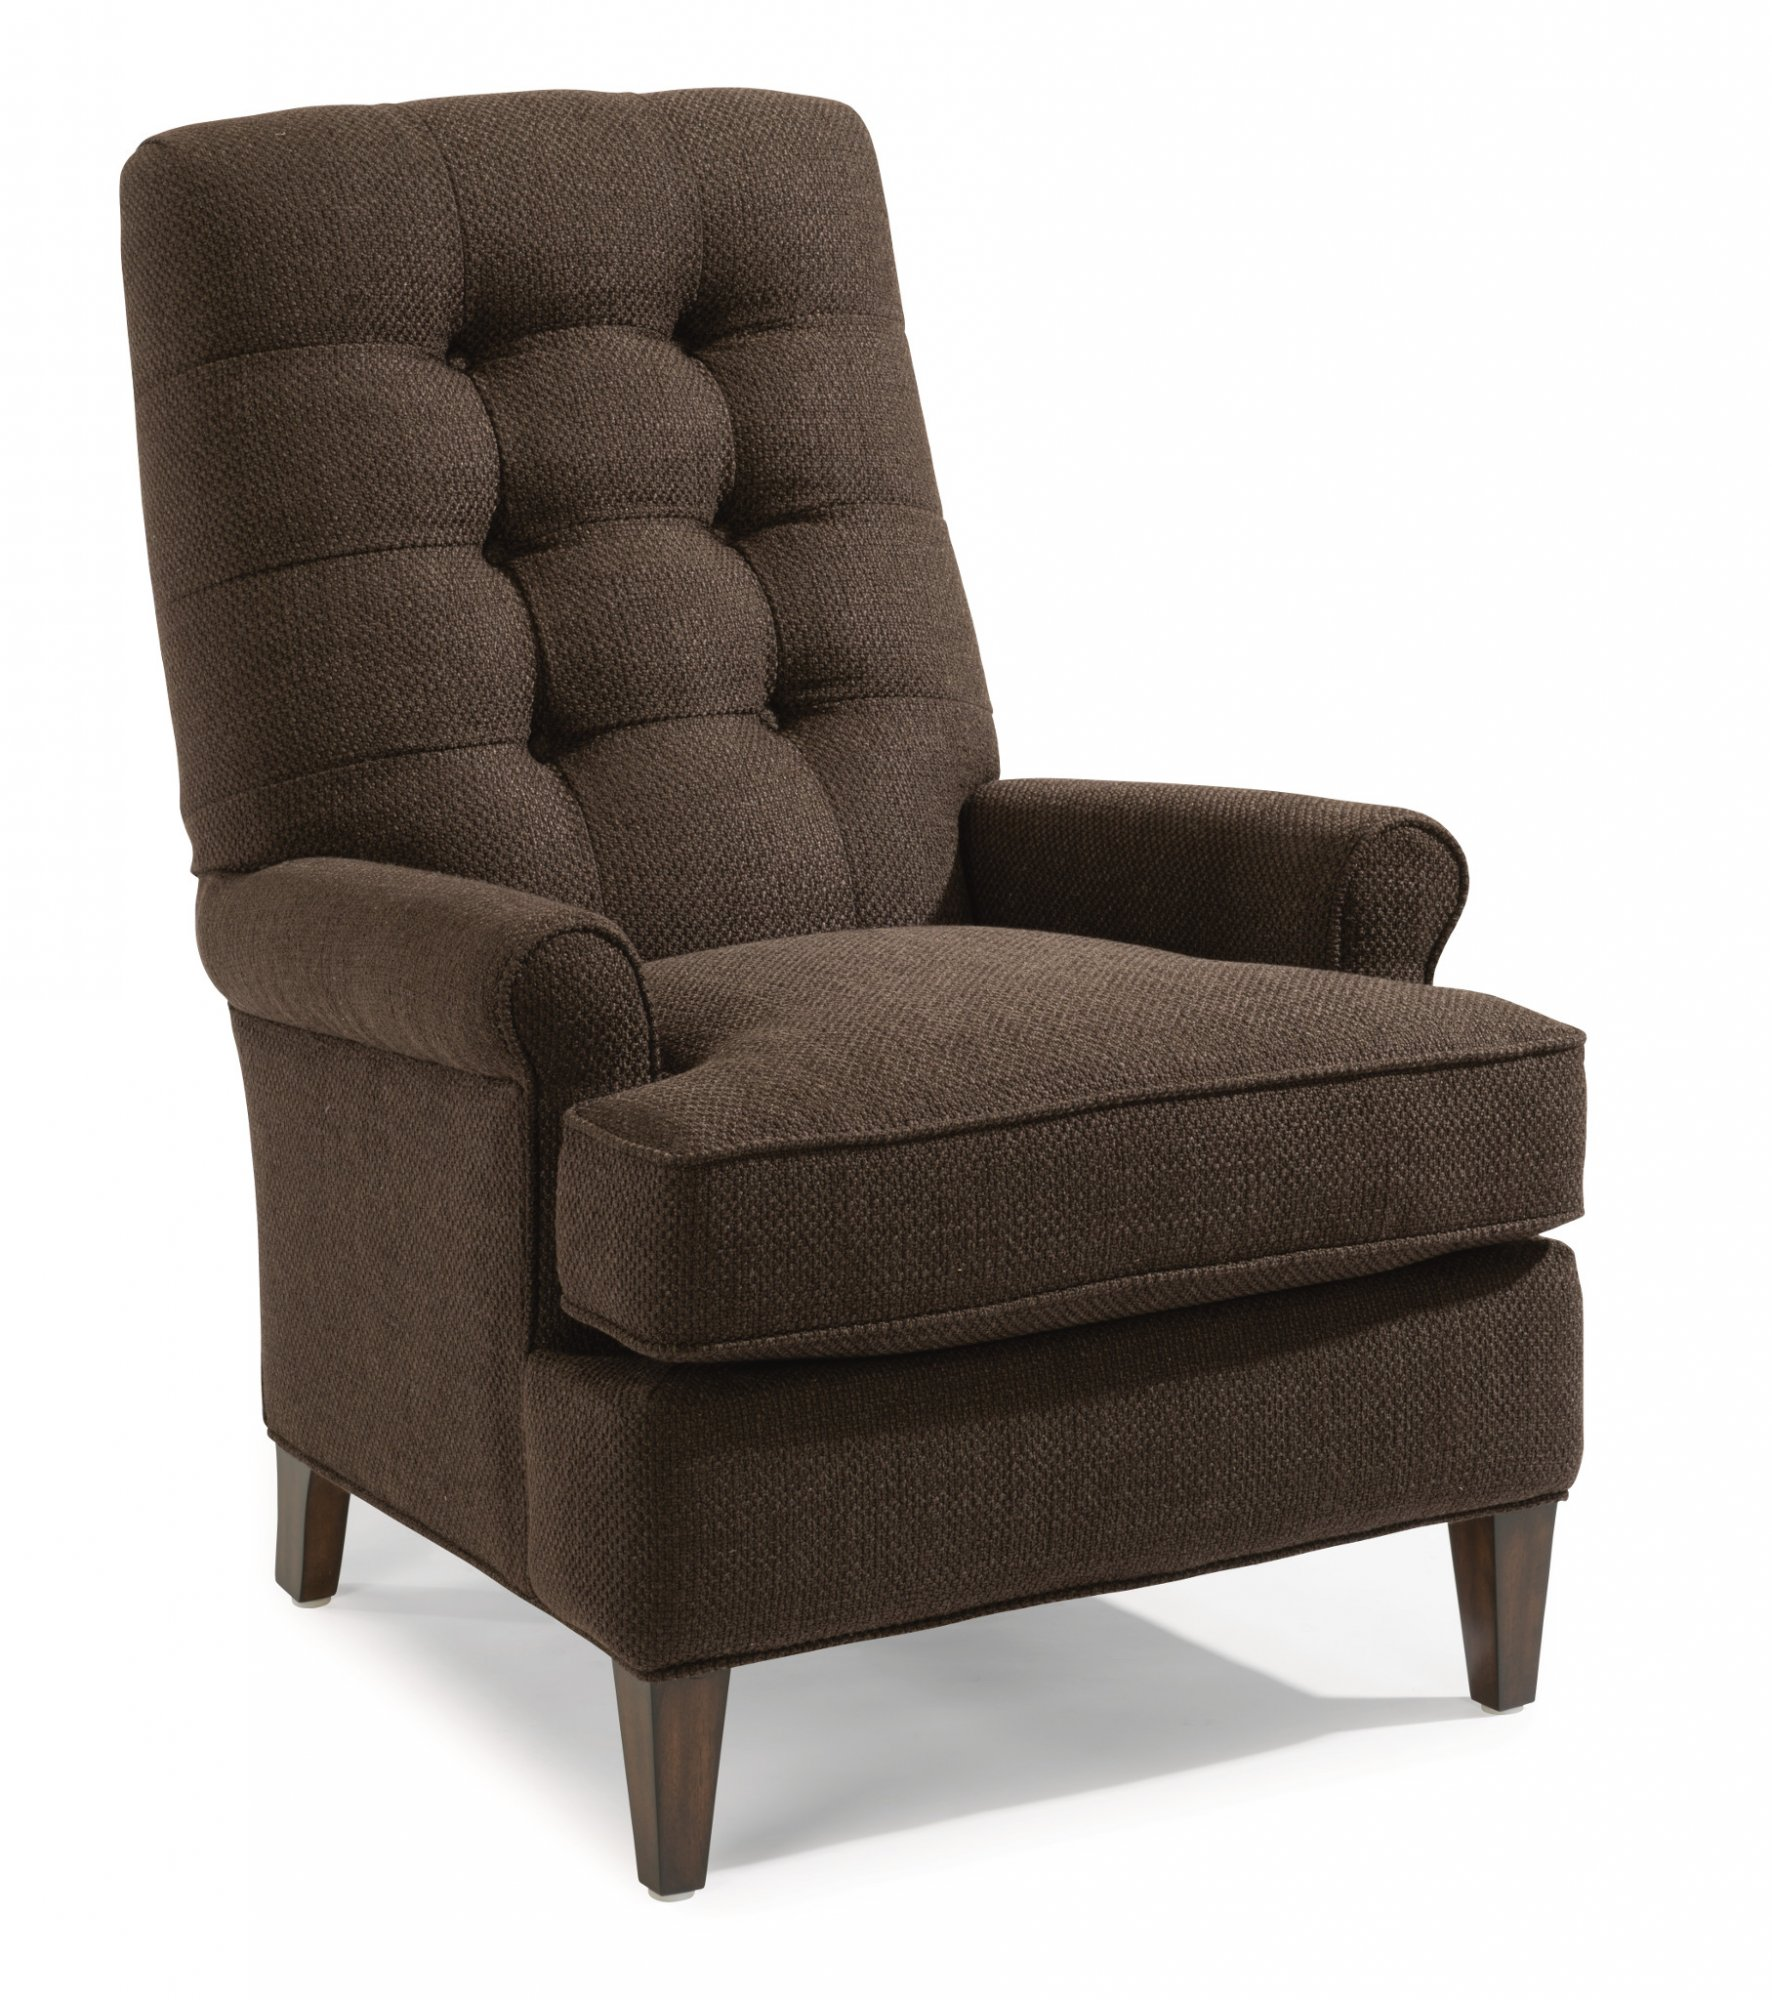 Flexsteel Rowan  Fabric Chair